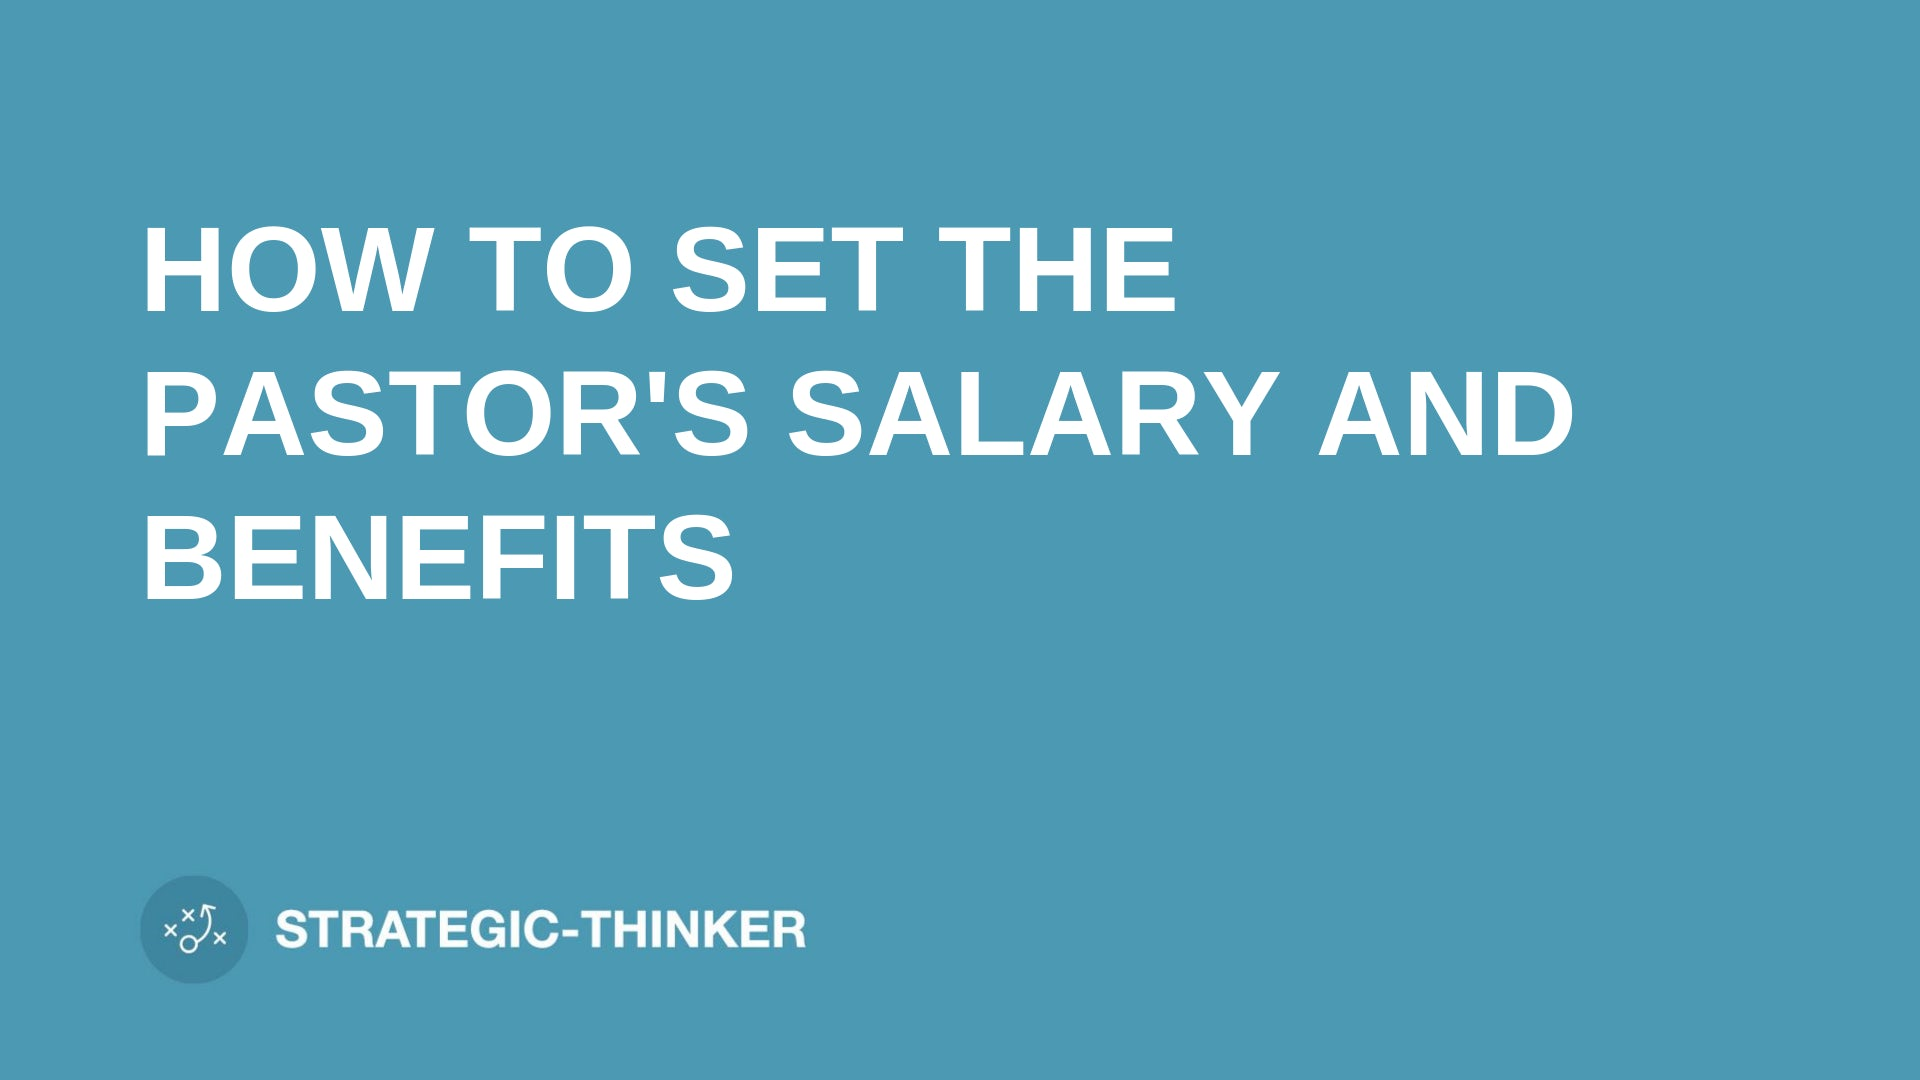 "text ""HOW TO SET THE PASTOR'S SALARY AND BENEFITS"" on blue background leaders.church"